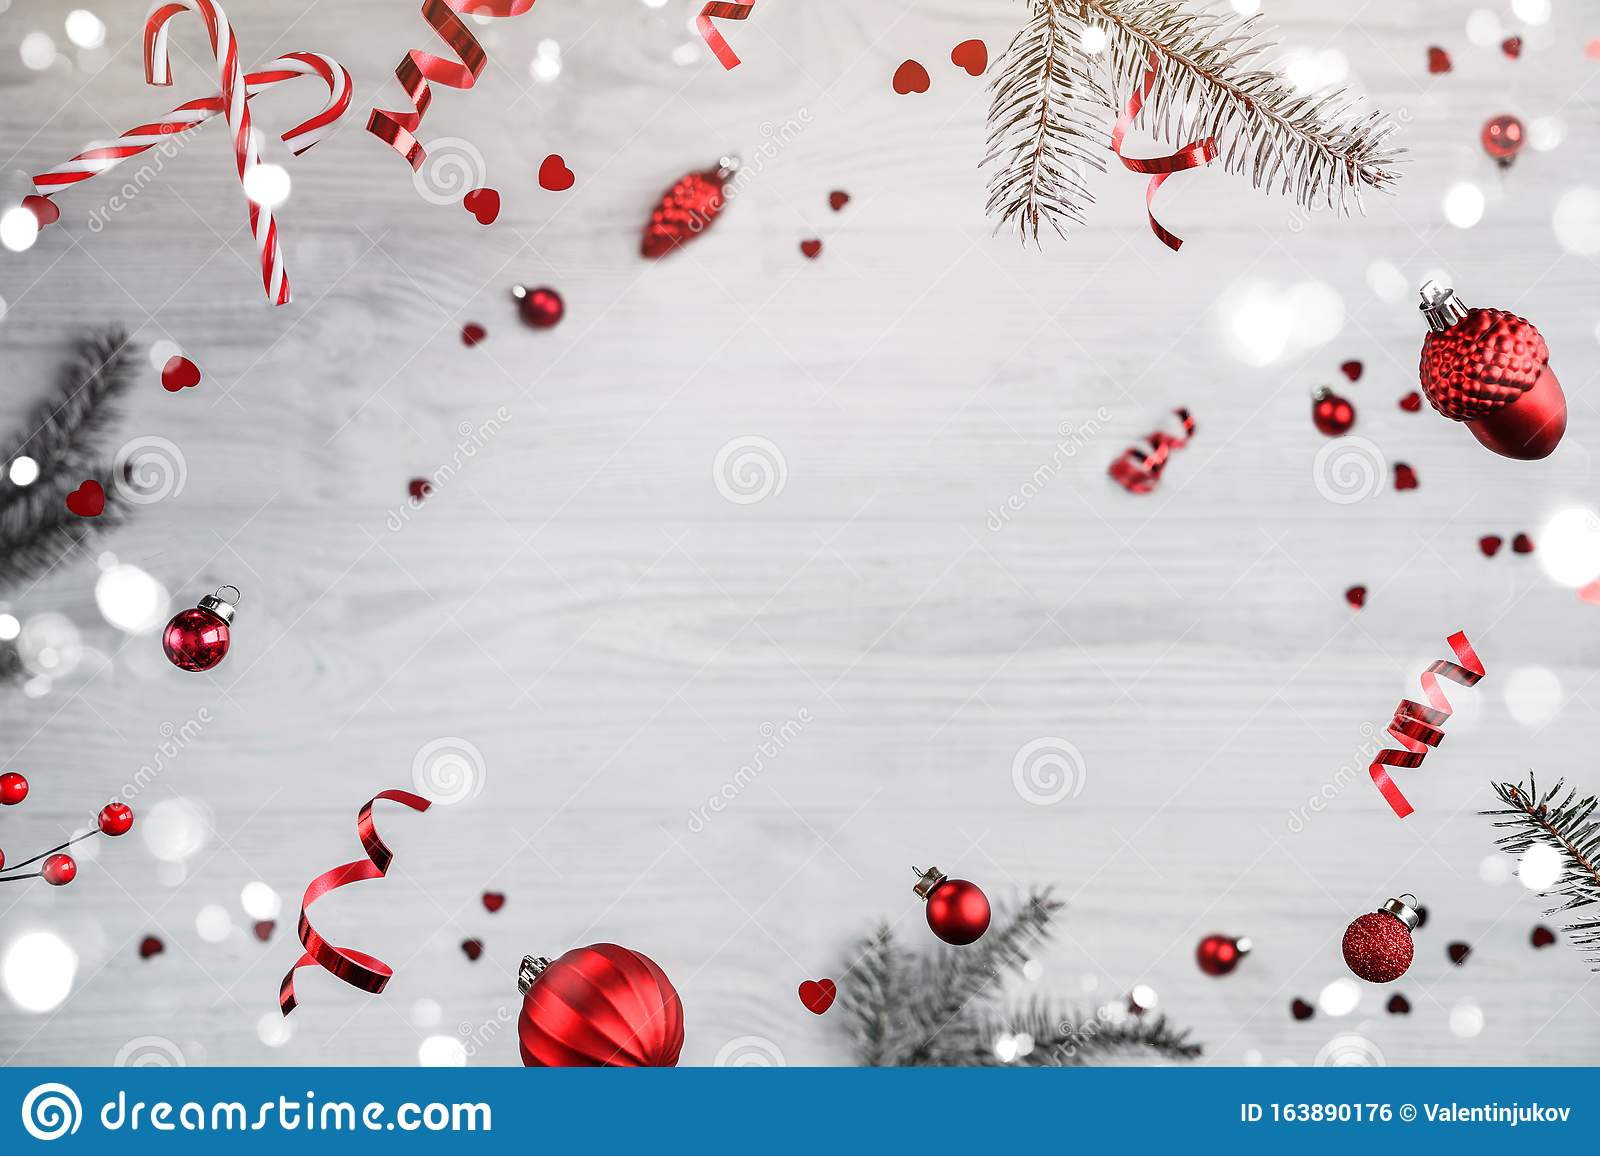 Merry Christmas and New Year background. Xmas holiday card made of flying decorations,